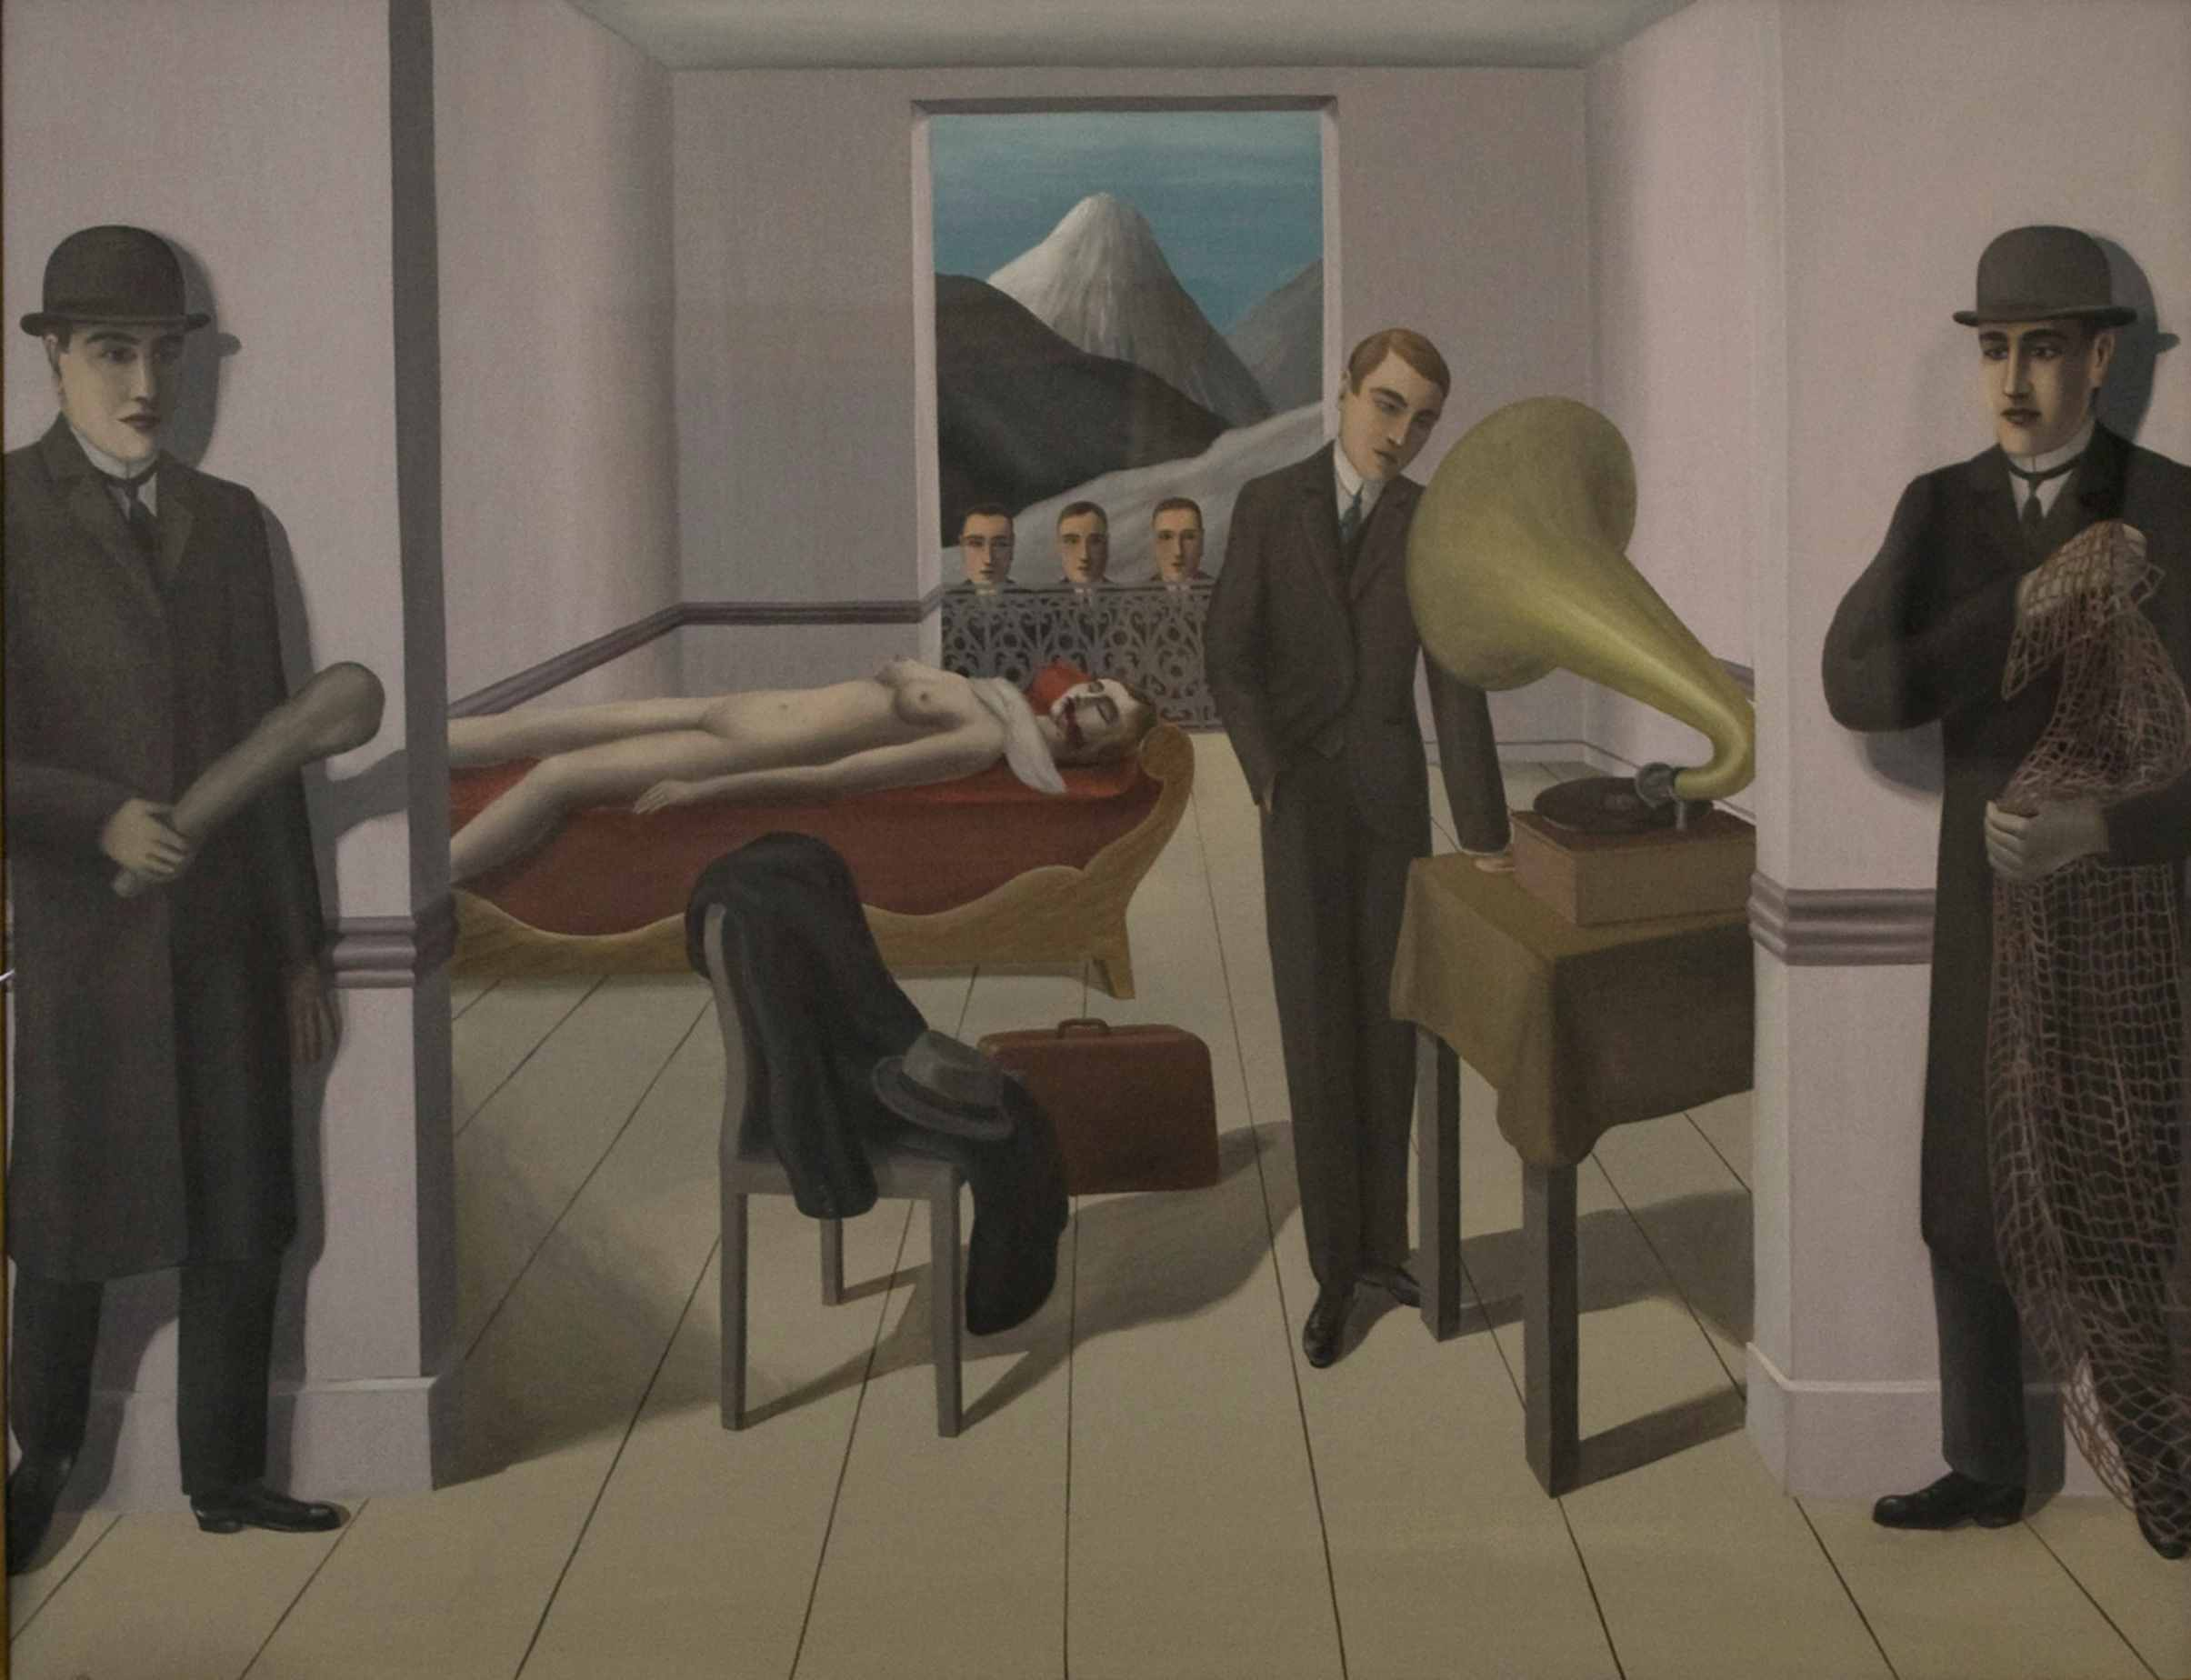 Placid men at a crime scene with a dead woman